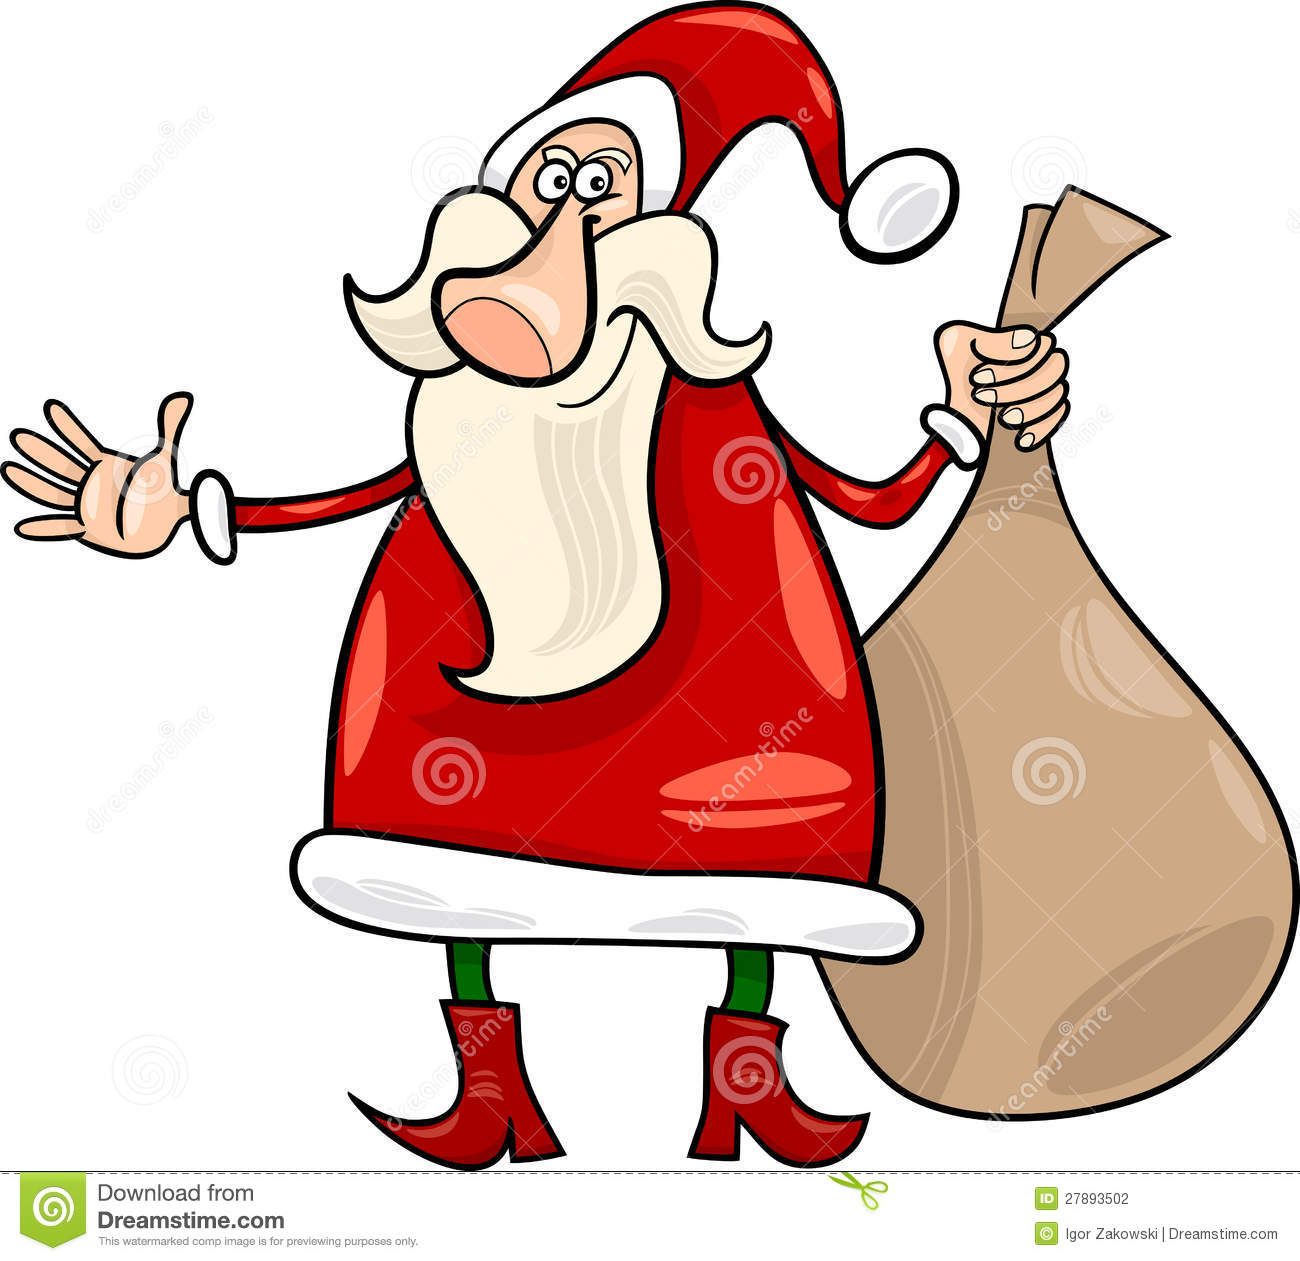 Santa claus christmas cartoon illustration stock photography image